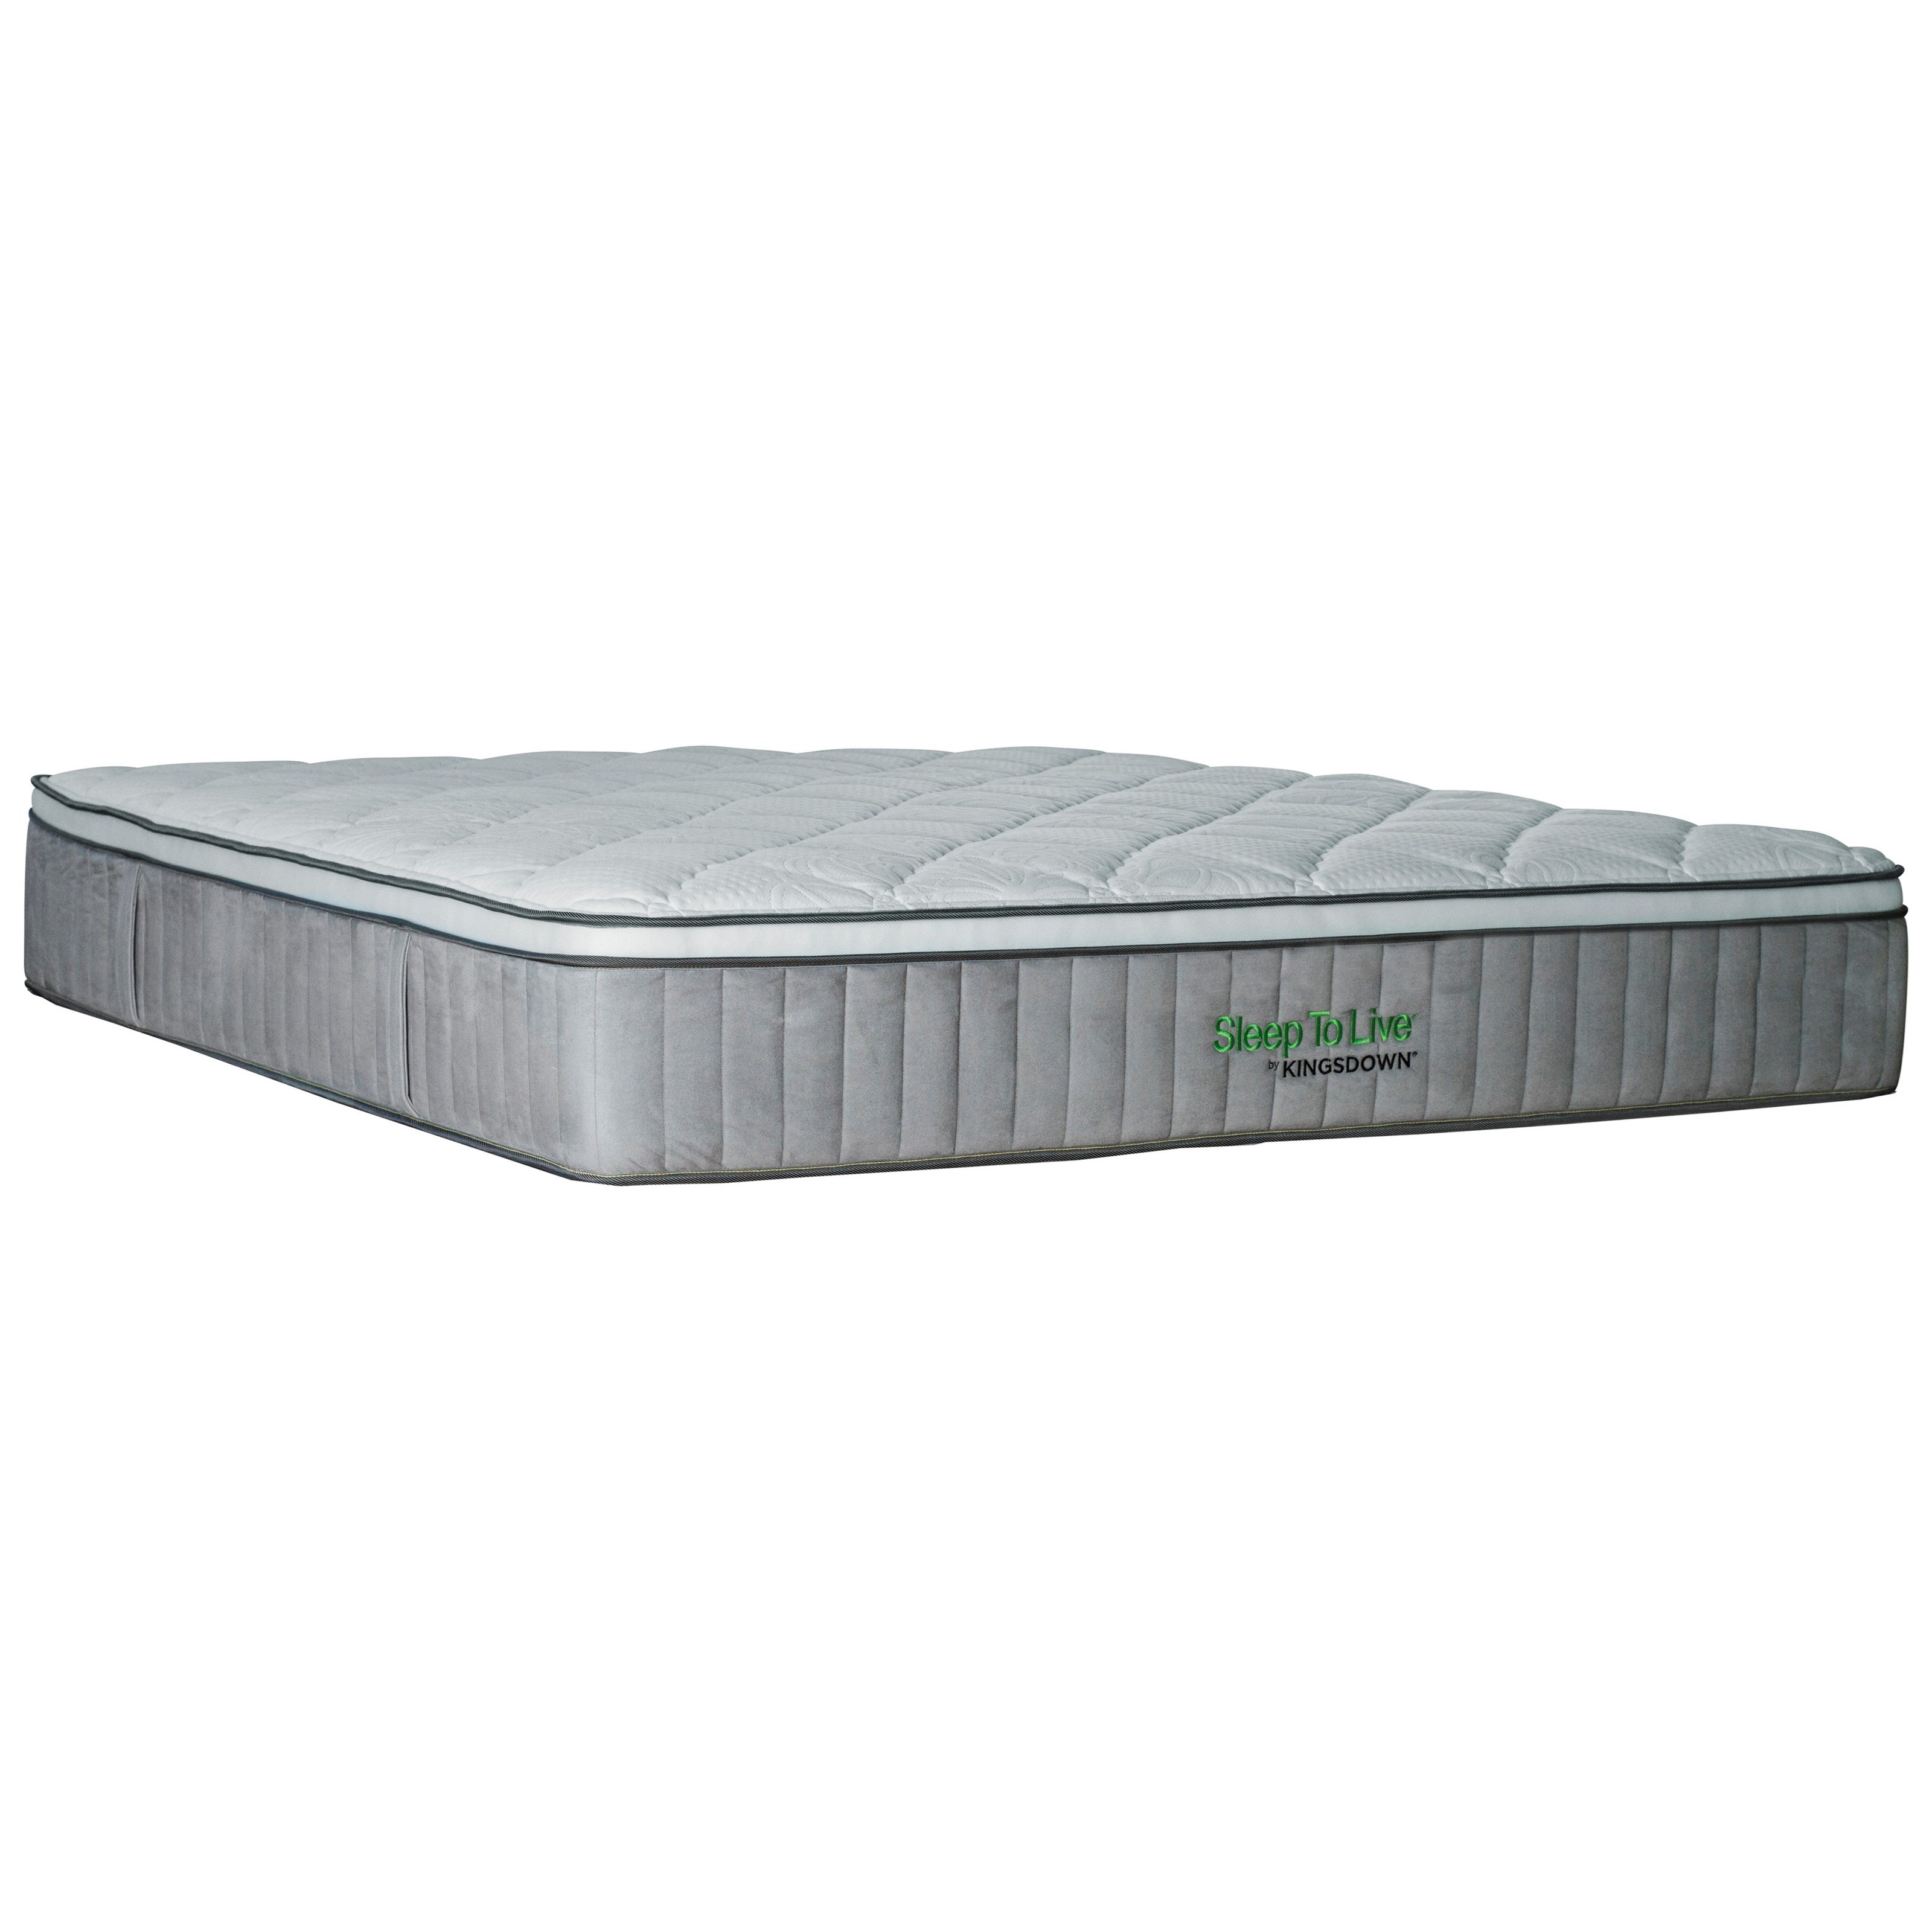 "Kingsdown 5227 Blue 200 Series Queen 13.5"" Cushion Firm Luxury Mattress - Item Number: 5227-Q"